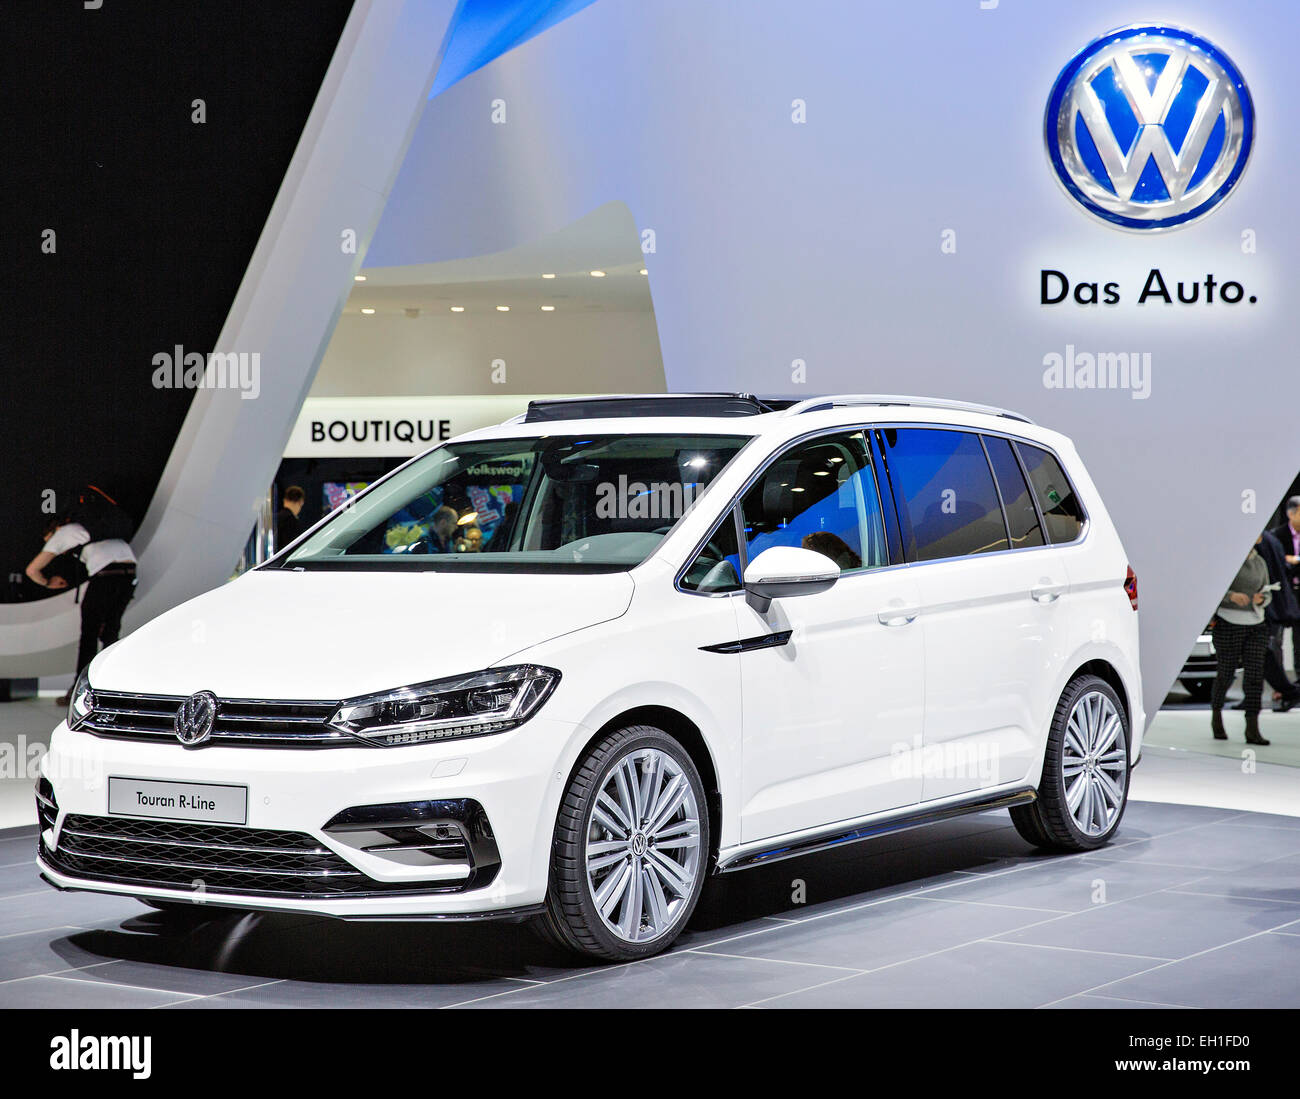 volkswagen touran r line stock photo royalty free image 79324700 alamy. Black Bedroom Furniture Sets. Home Design Ideas